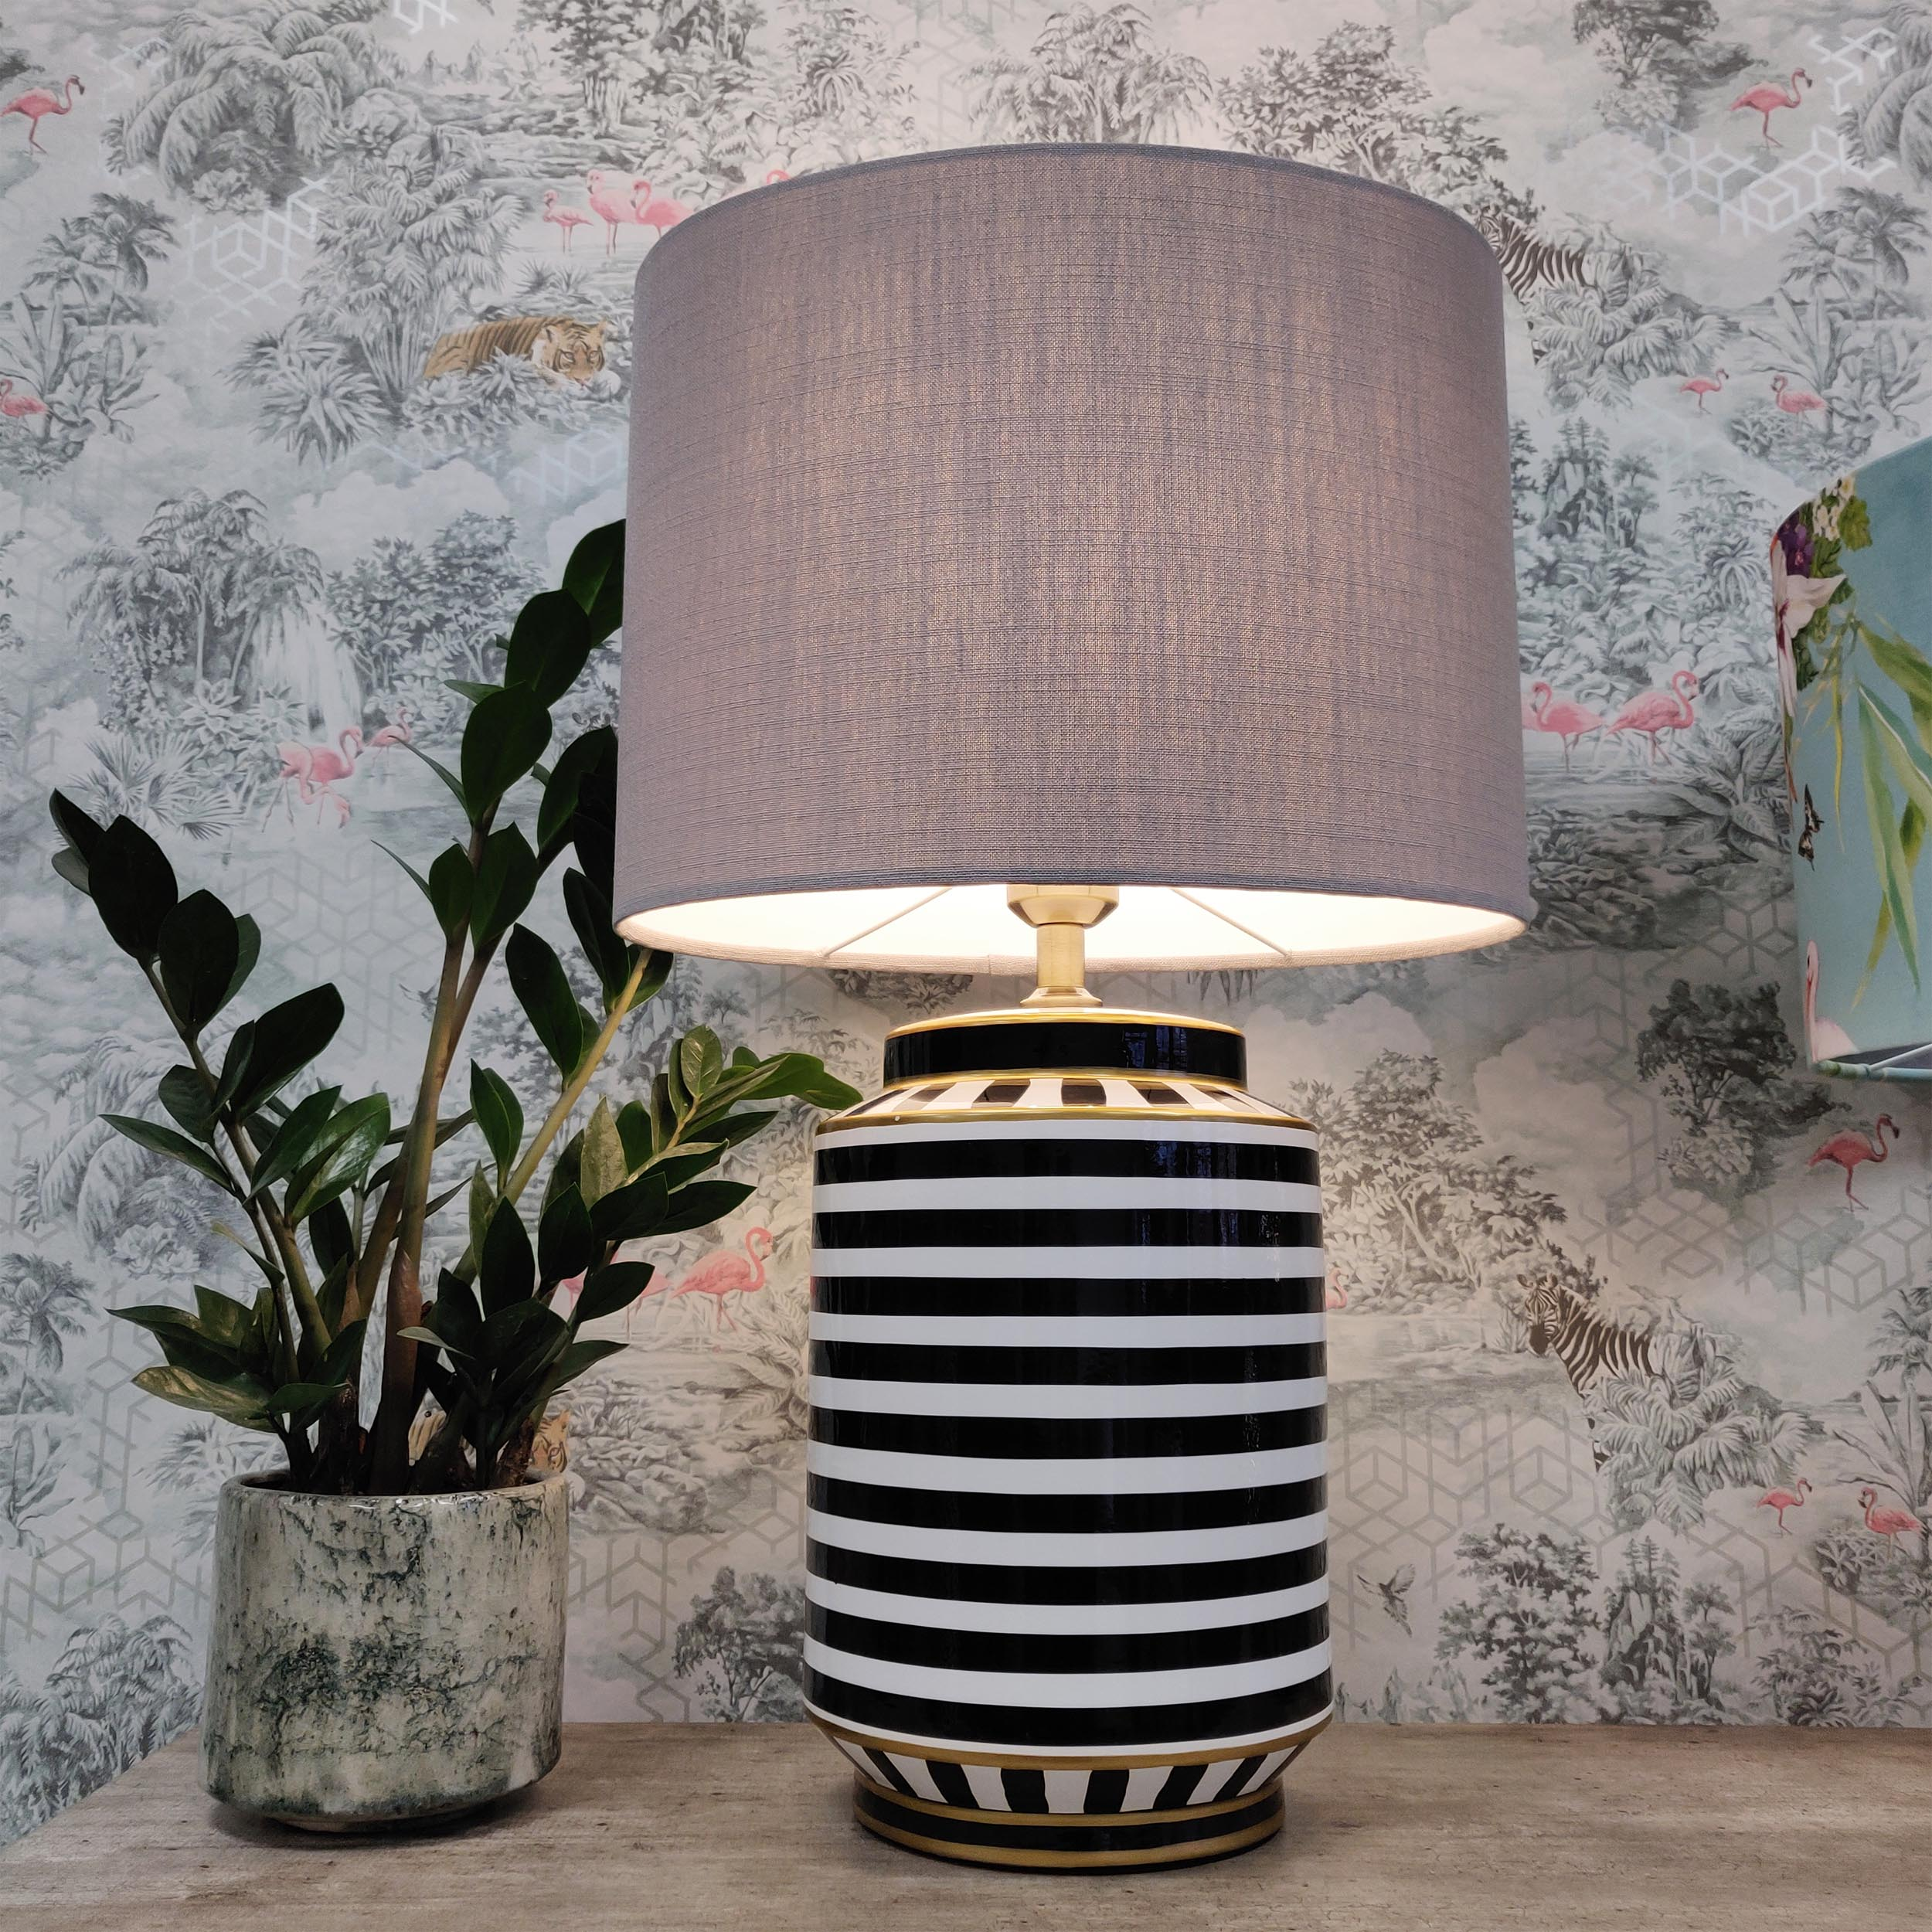 Tall Table Lamp in Black and White Stripes, Monochrome